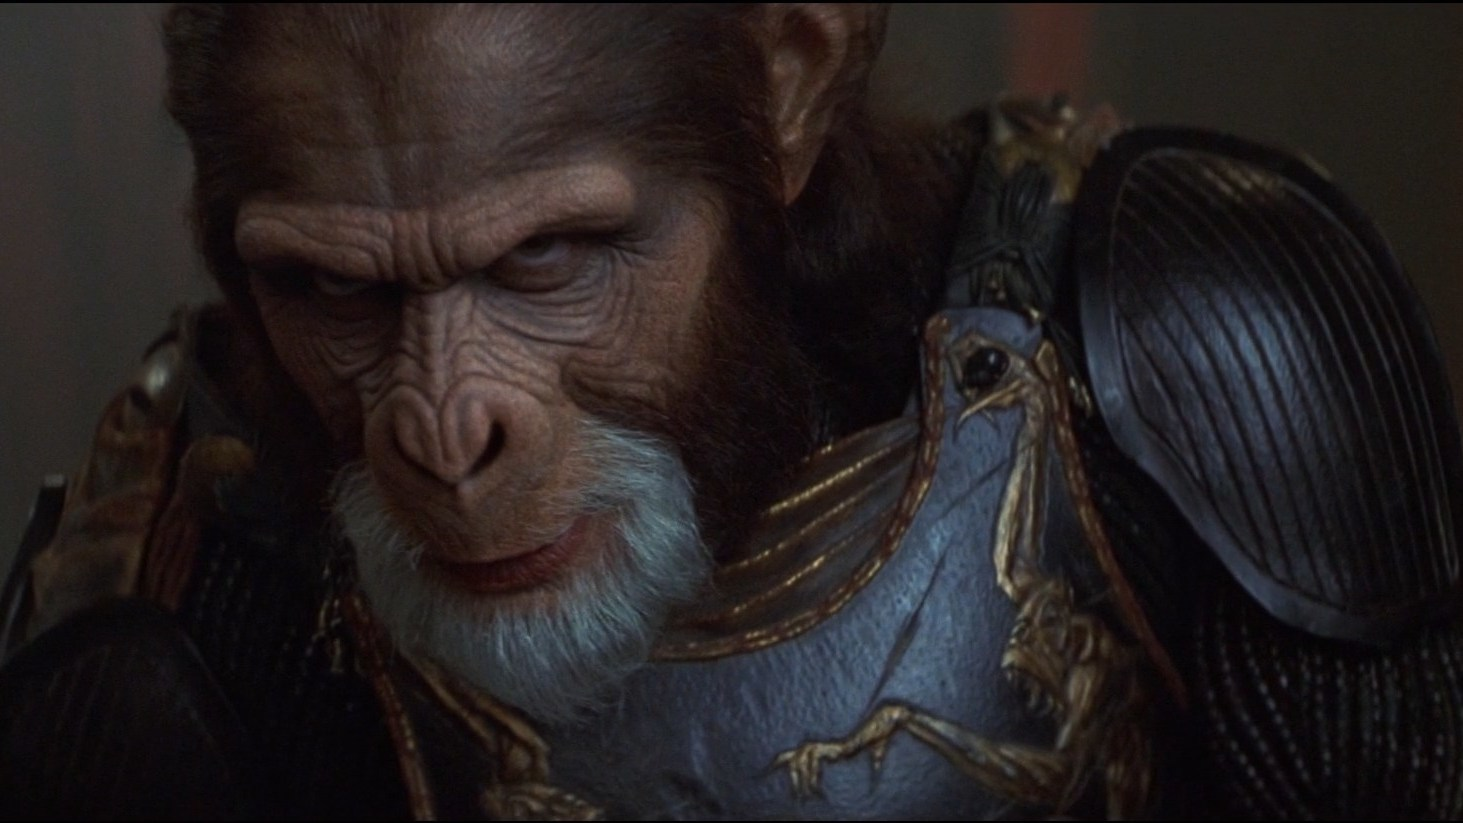 9. 'Planet of the Apes' (2001)